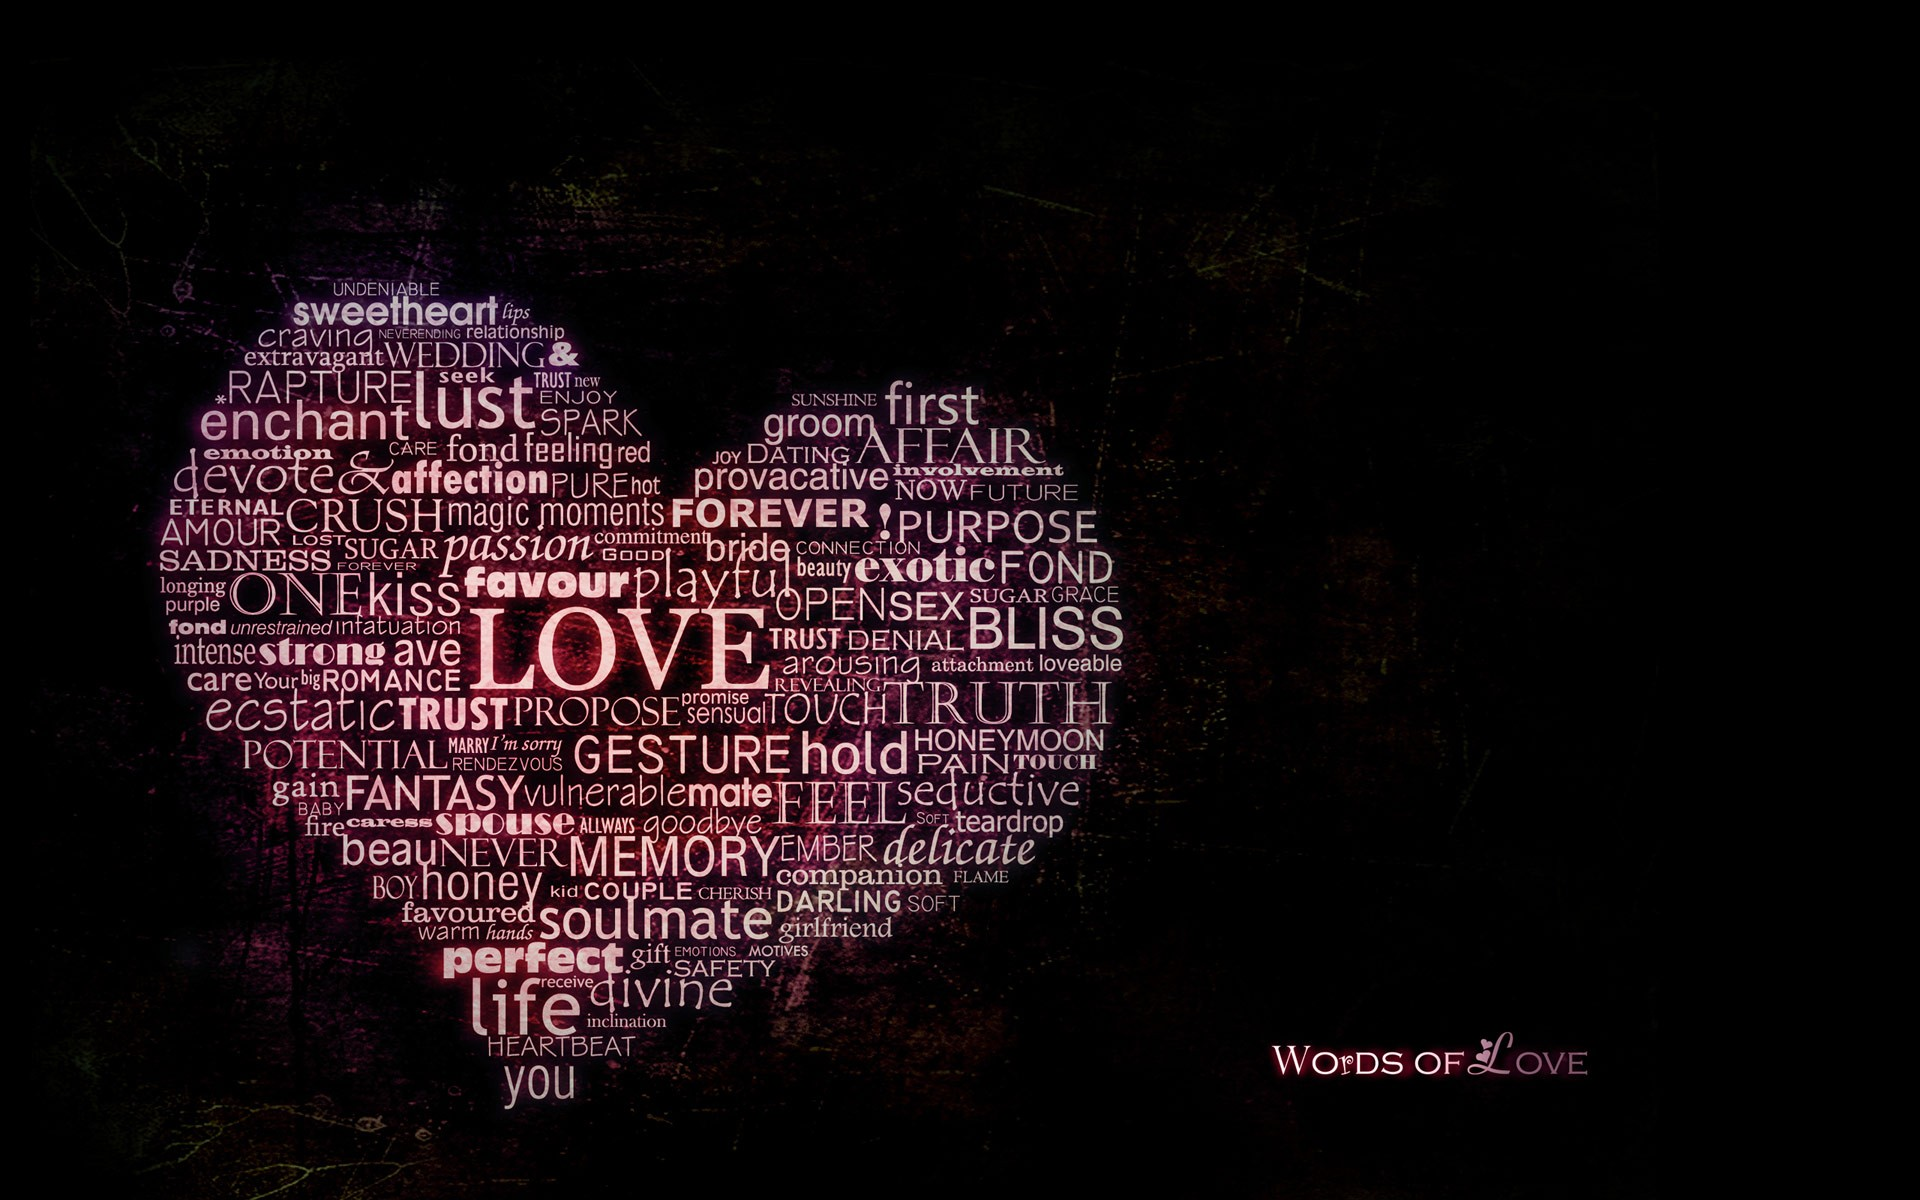 Love Quotes wallpaper   Love Photo 34653959 1920x1200